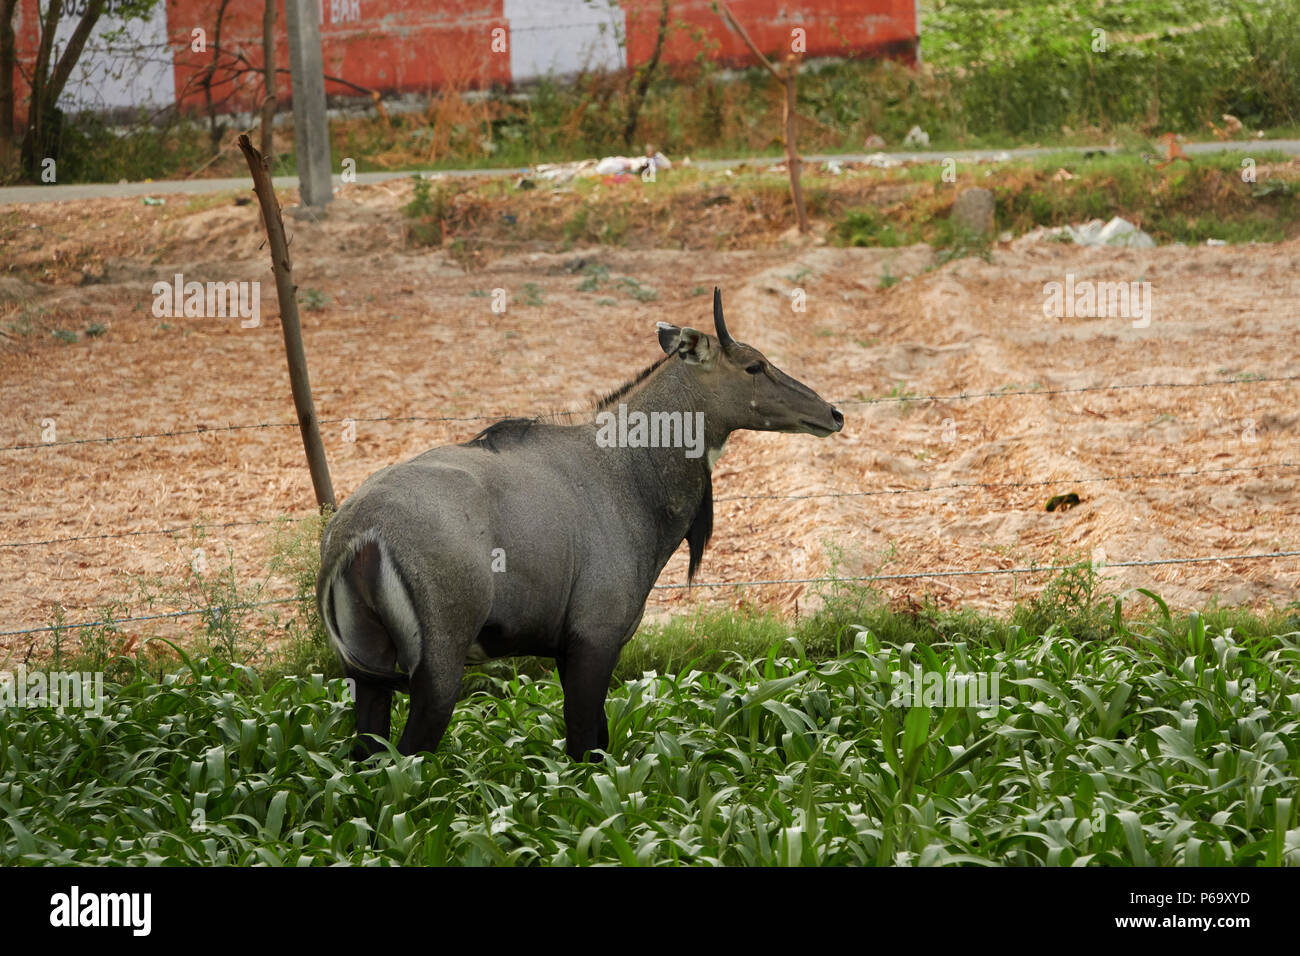 The nilgai or blue bull is the largest Asian antelope and is endemic to the Indian subcontinent. standing in a green grassland - Stock Image